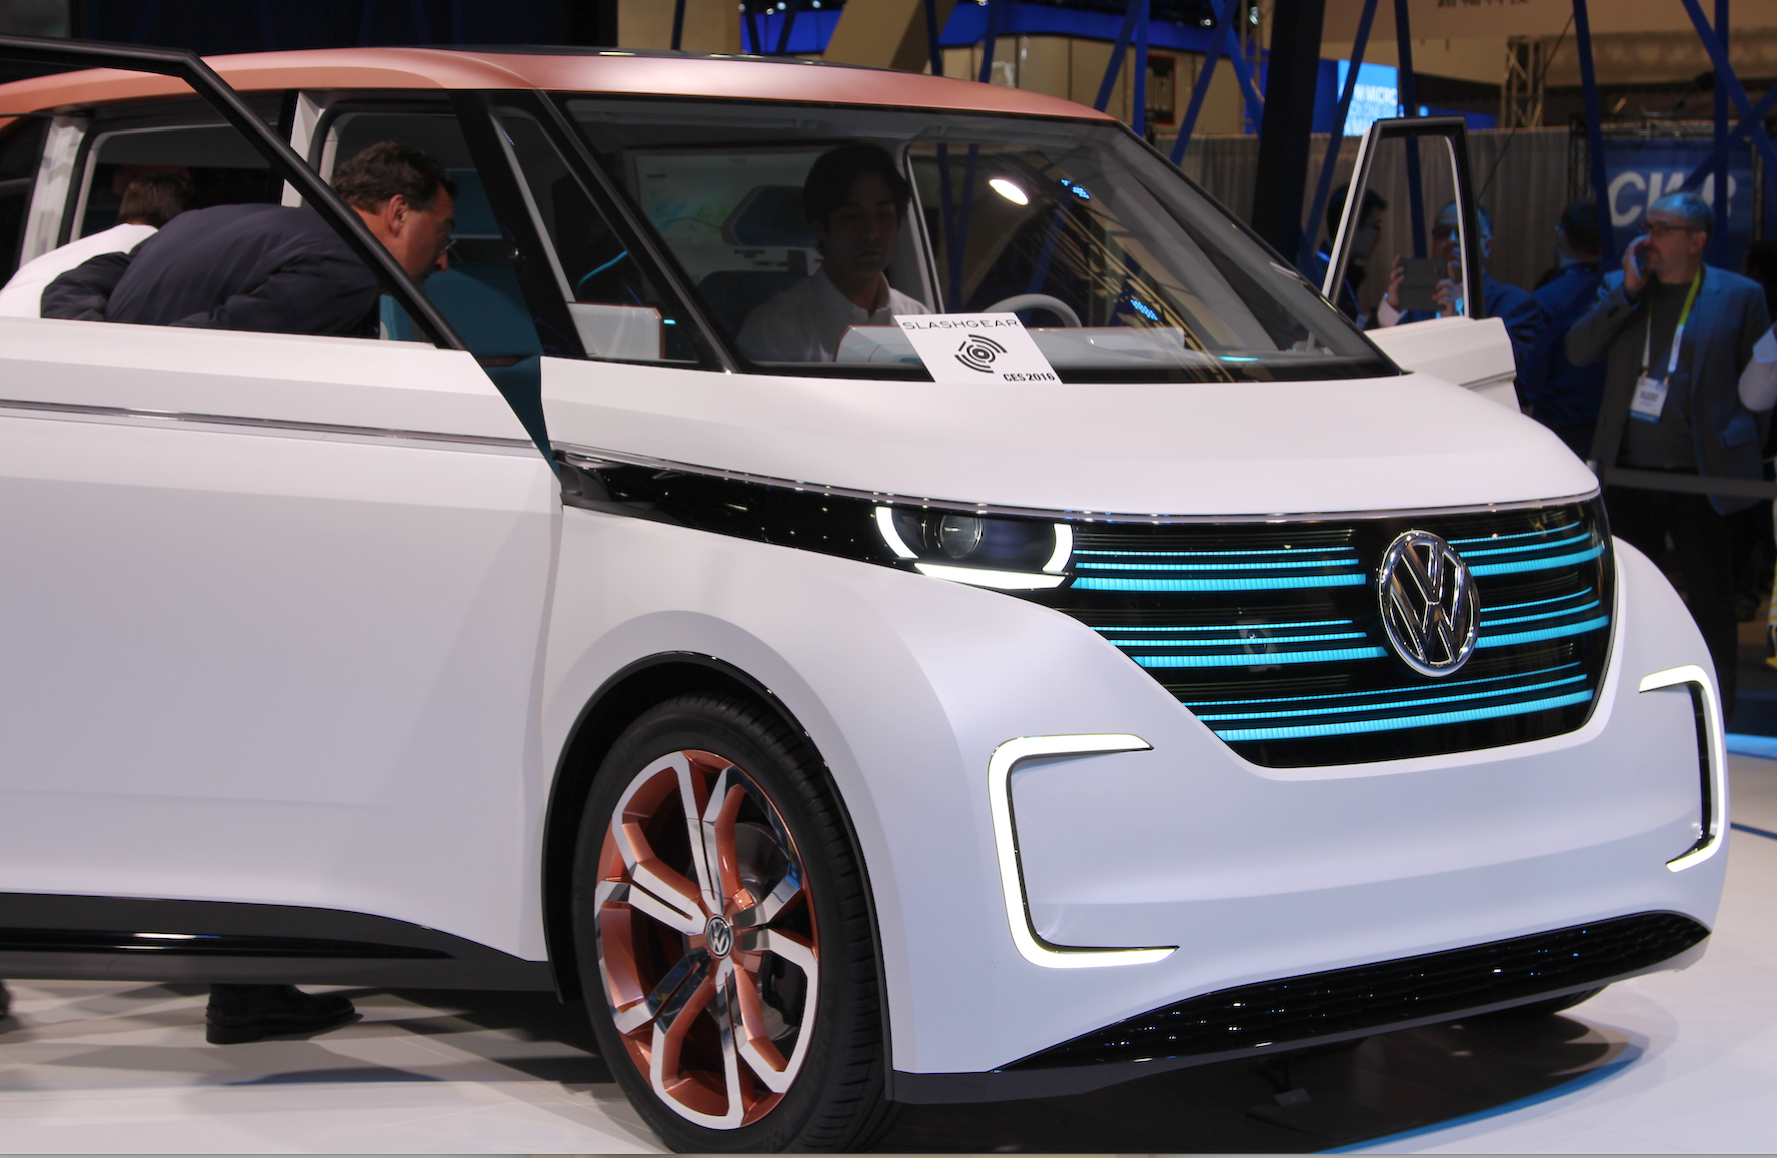 VW-driverless-car